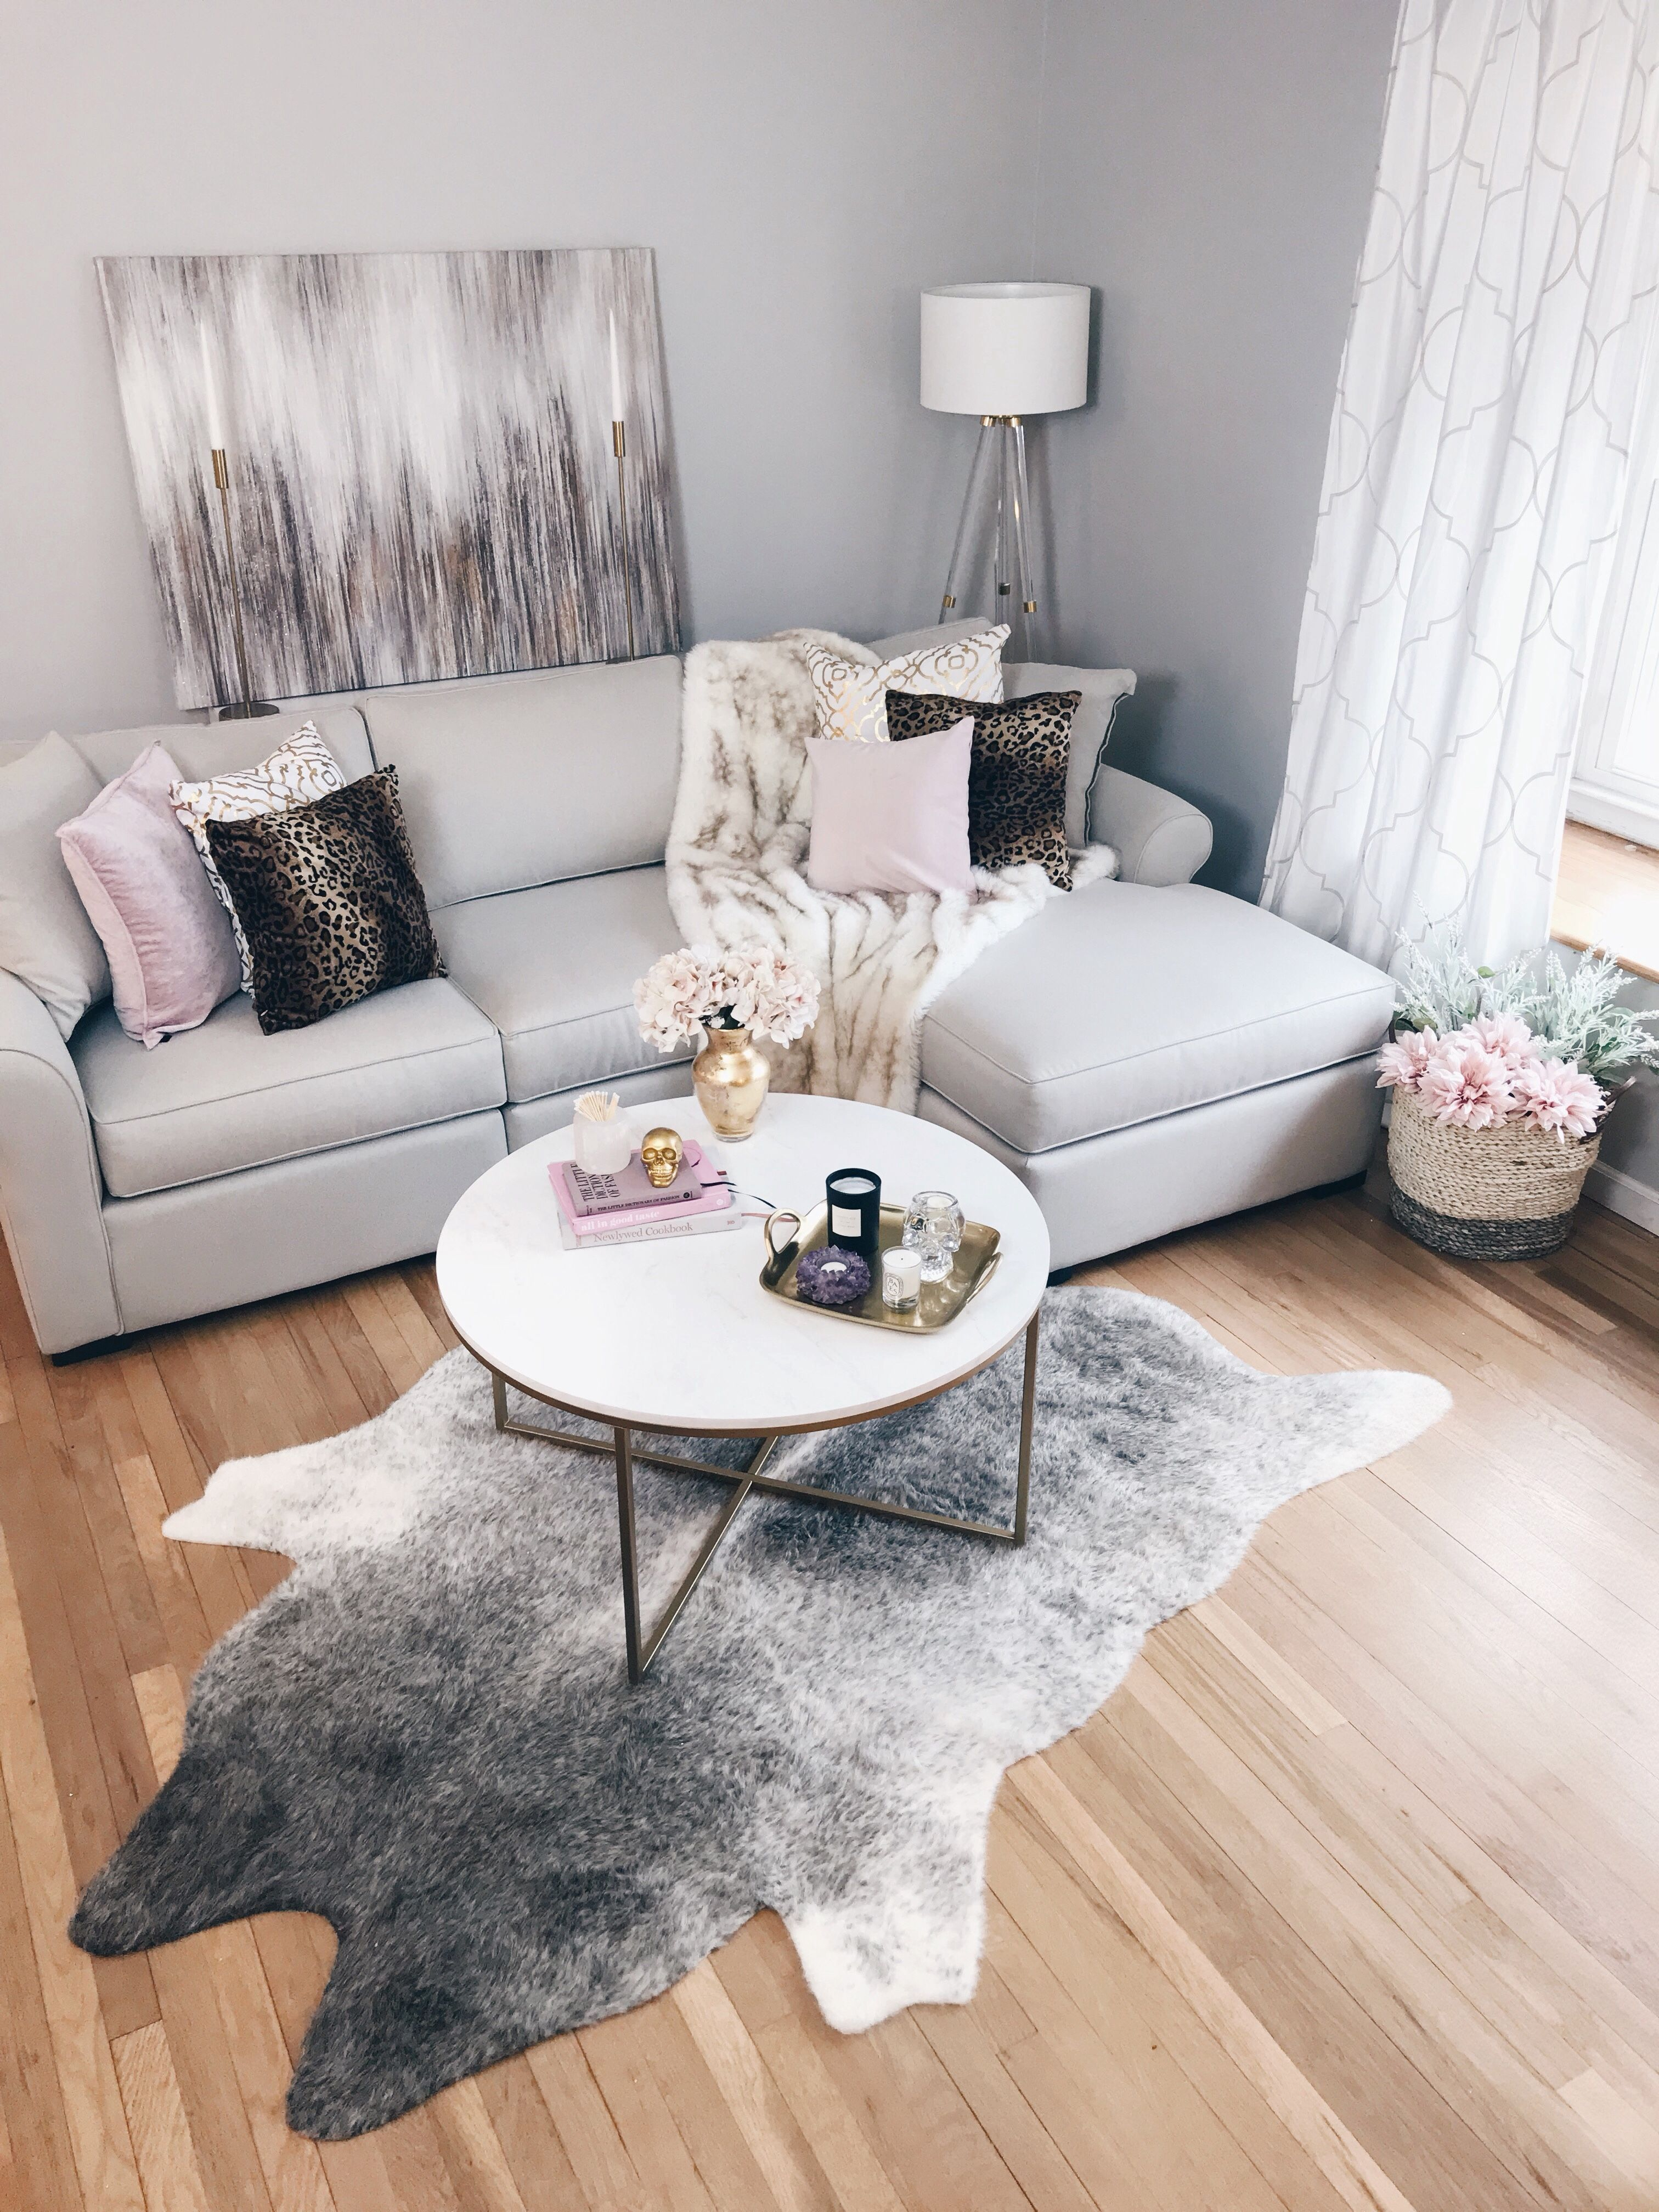 37+ Glam apartment decor on a budget ideas in 2021